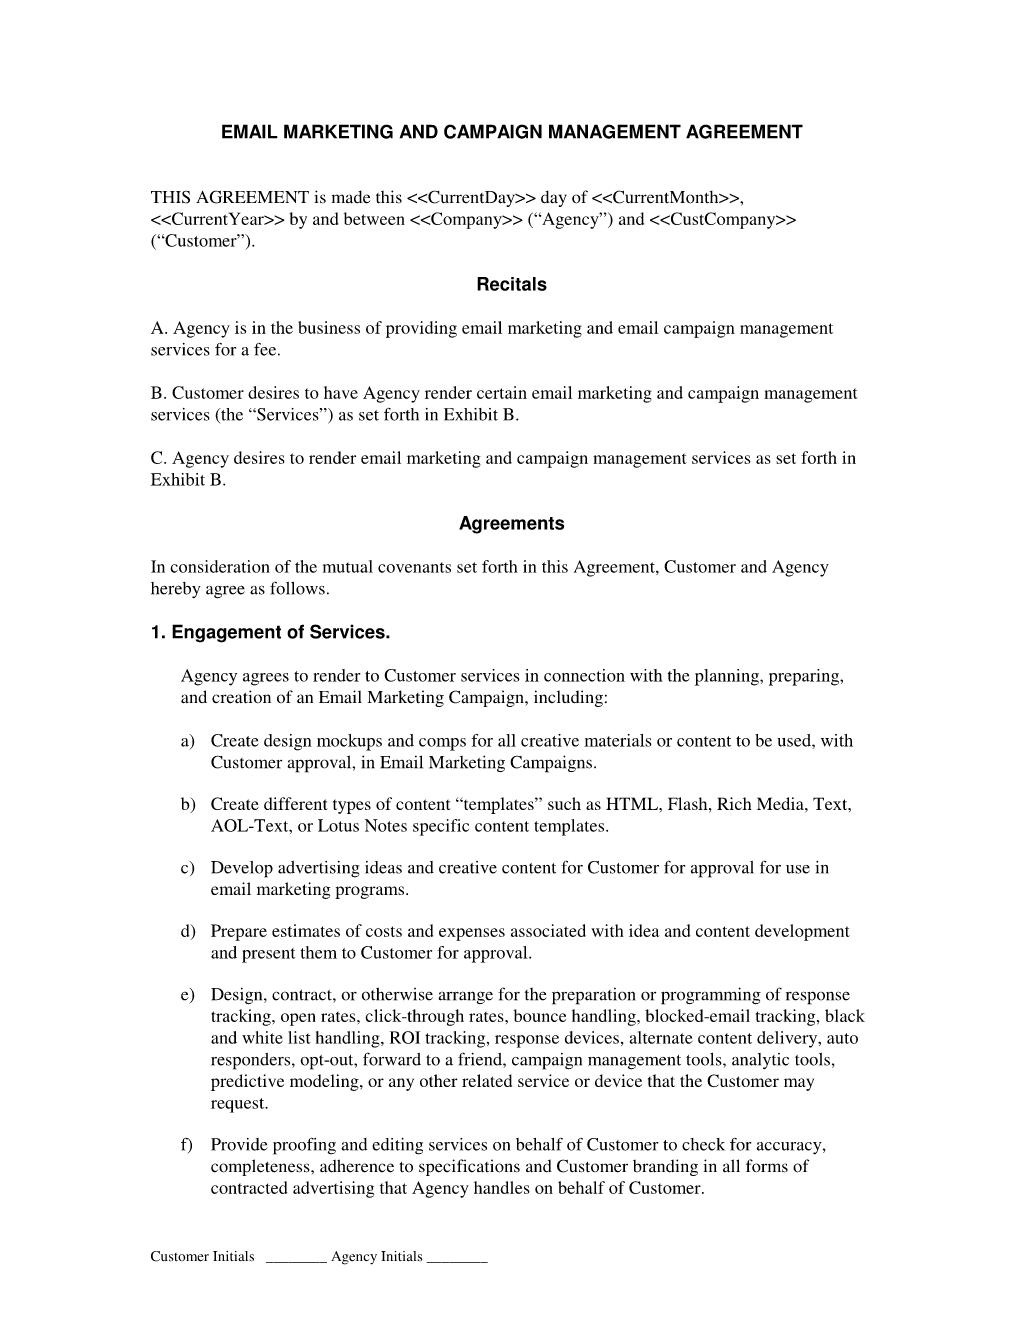 co promotion agreement template - view email marketing and campaign agreement work work